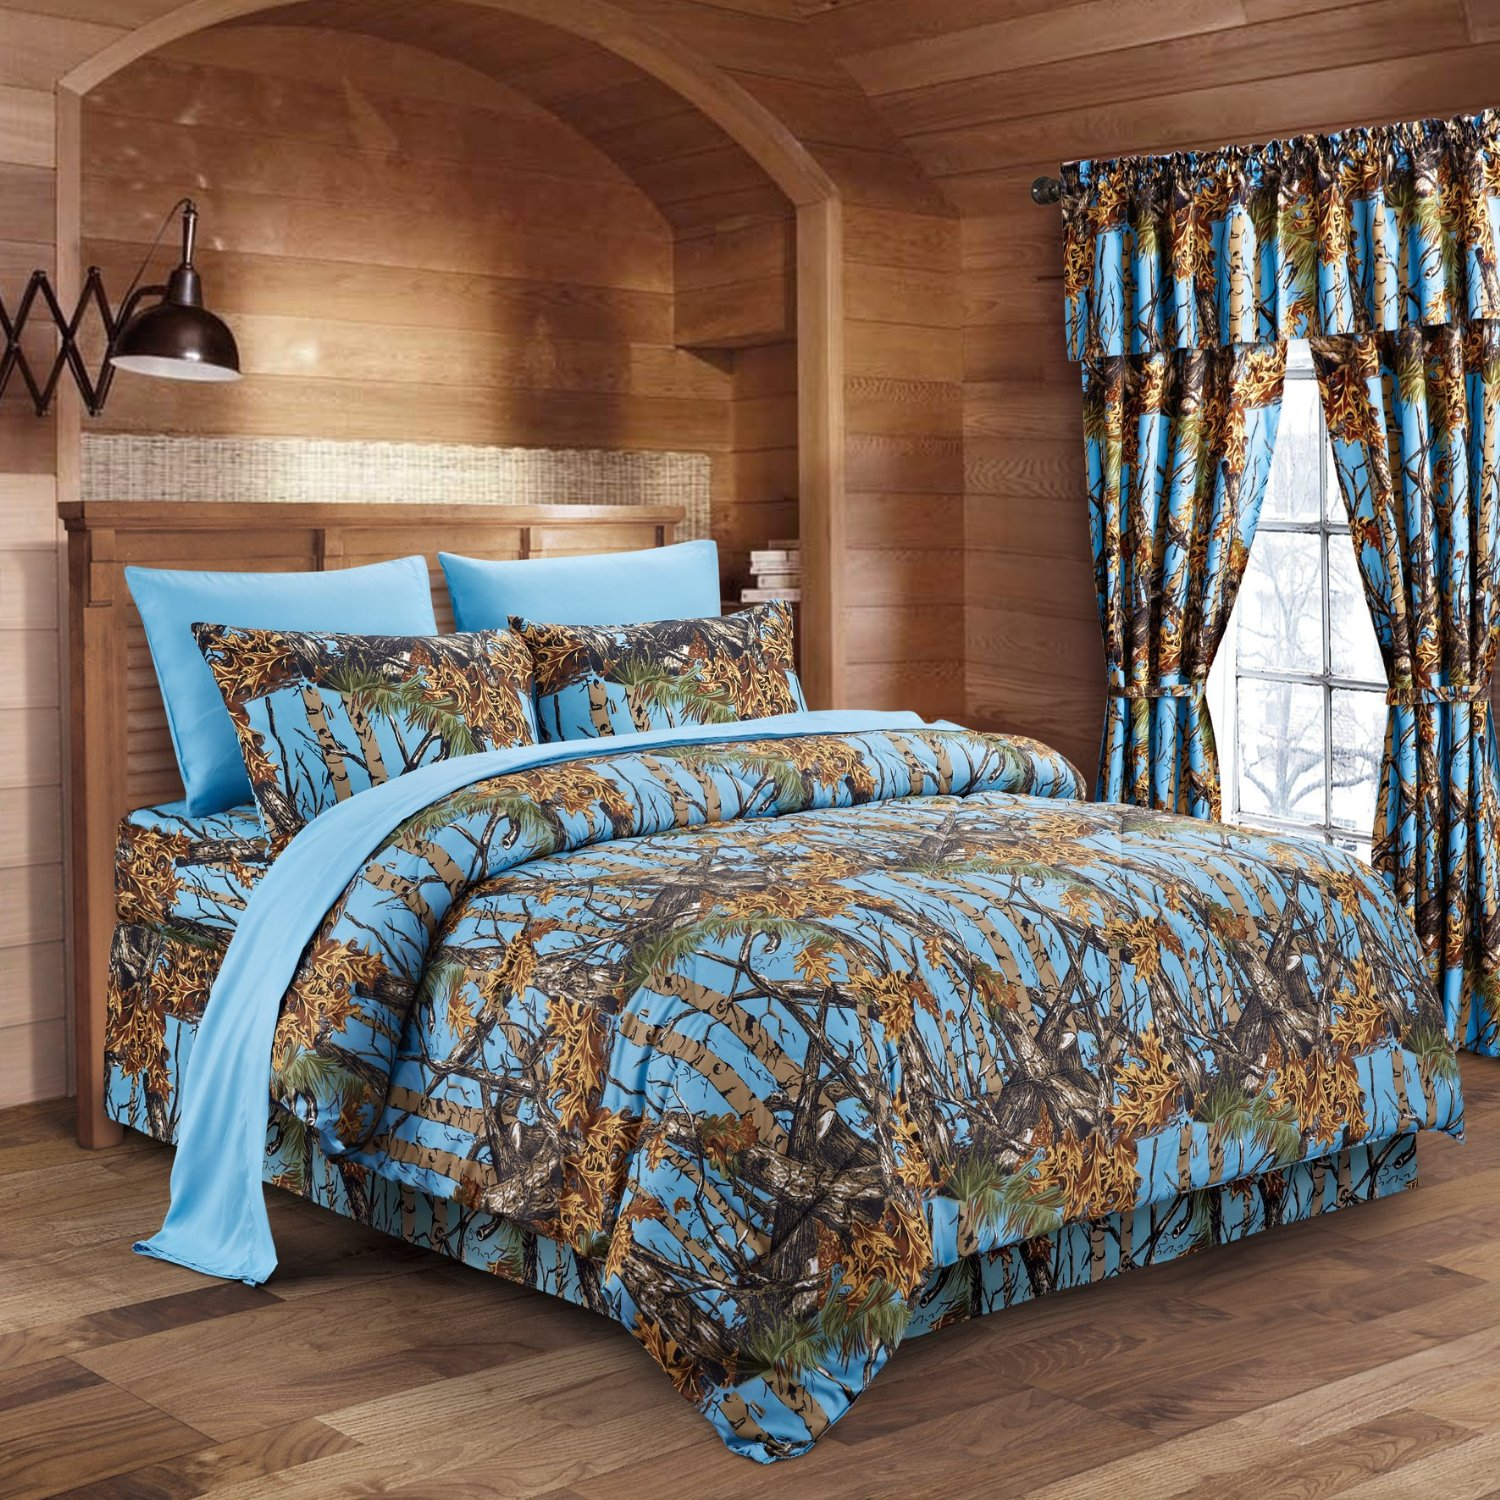 Regal Comfort 8pc King Size Woods Powder Blue Camouflage Premium Comforter, Sheet, Pillowcases,and Bed Skirt Set Camo Bedding Set For Hunters Cabin or Rustic Lodge Teens Boys and Girls